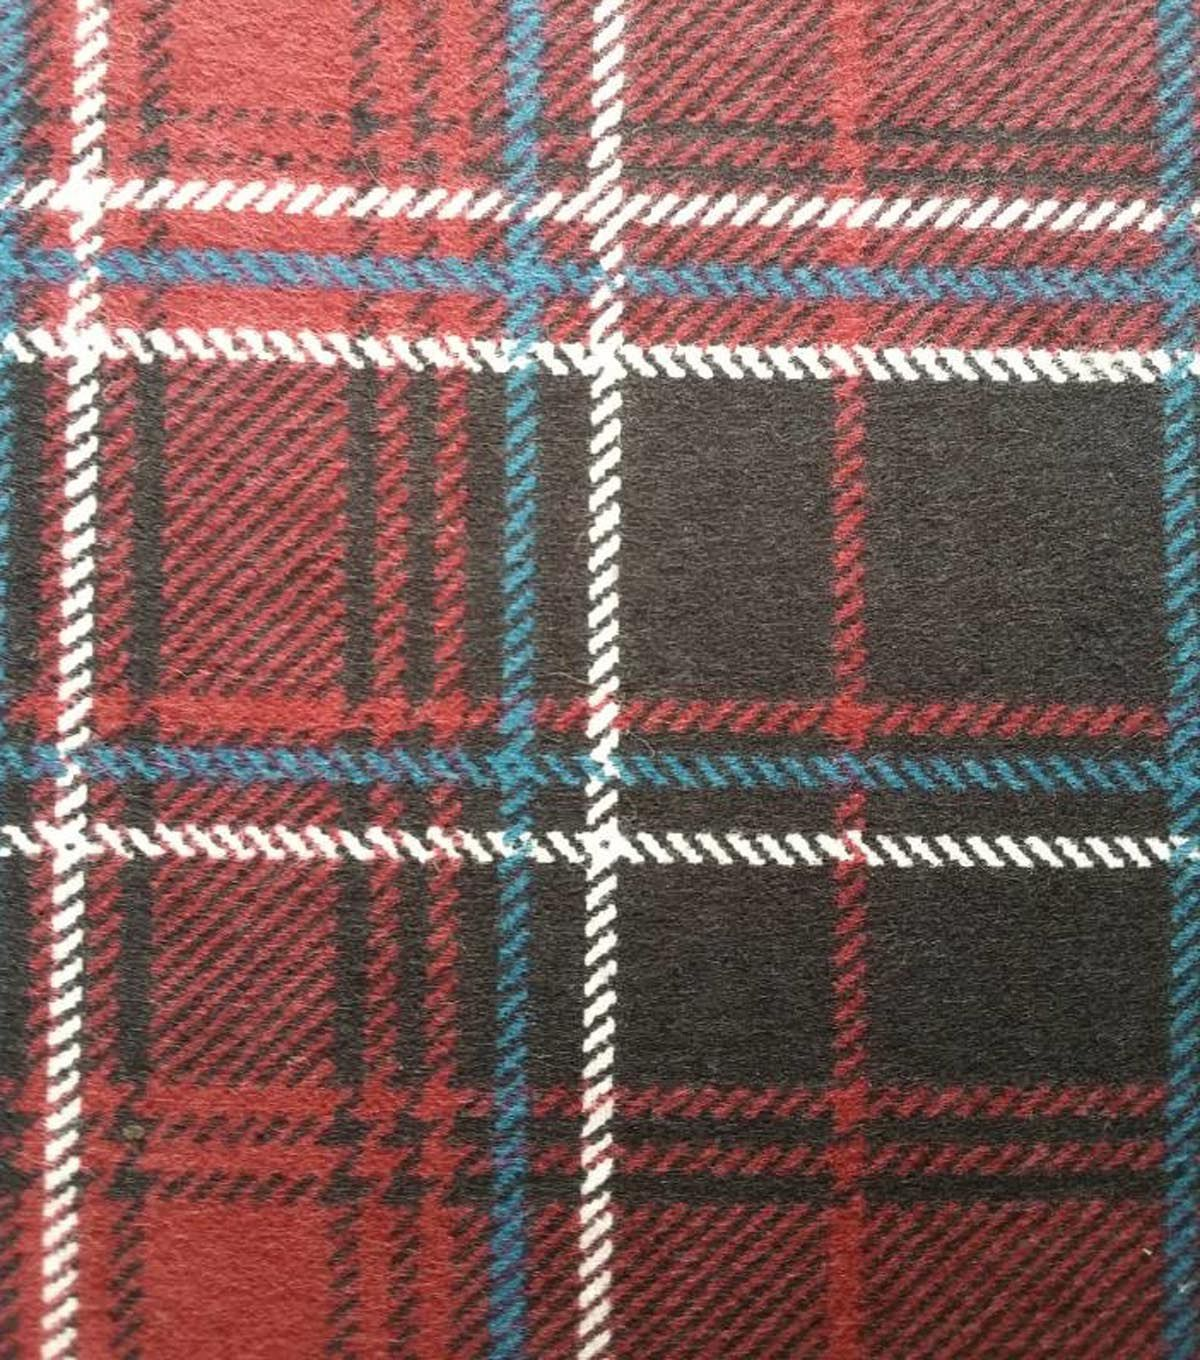 Red flannel fabric  Snuggle Flannel FabricBurgundy Plaid   First BDay  Pinterest